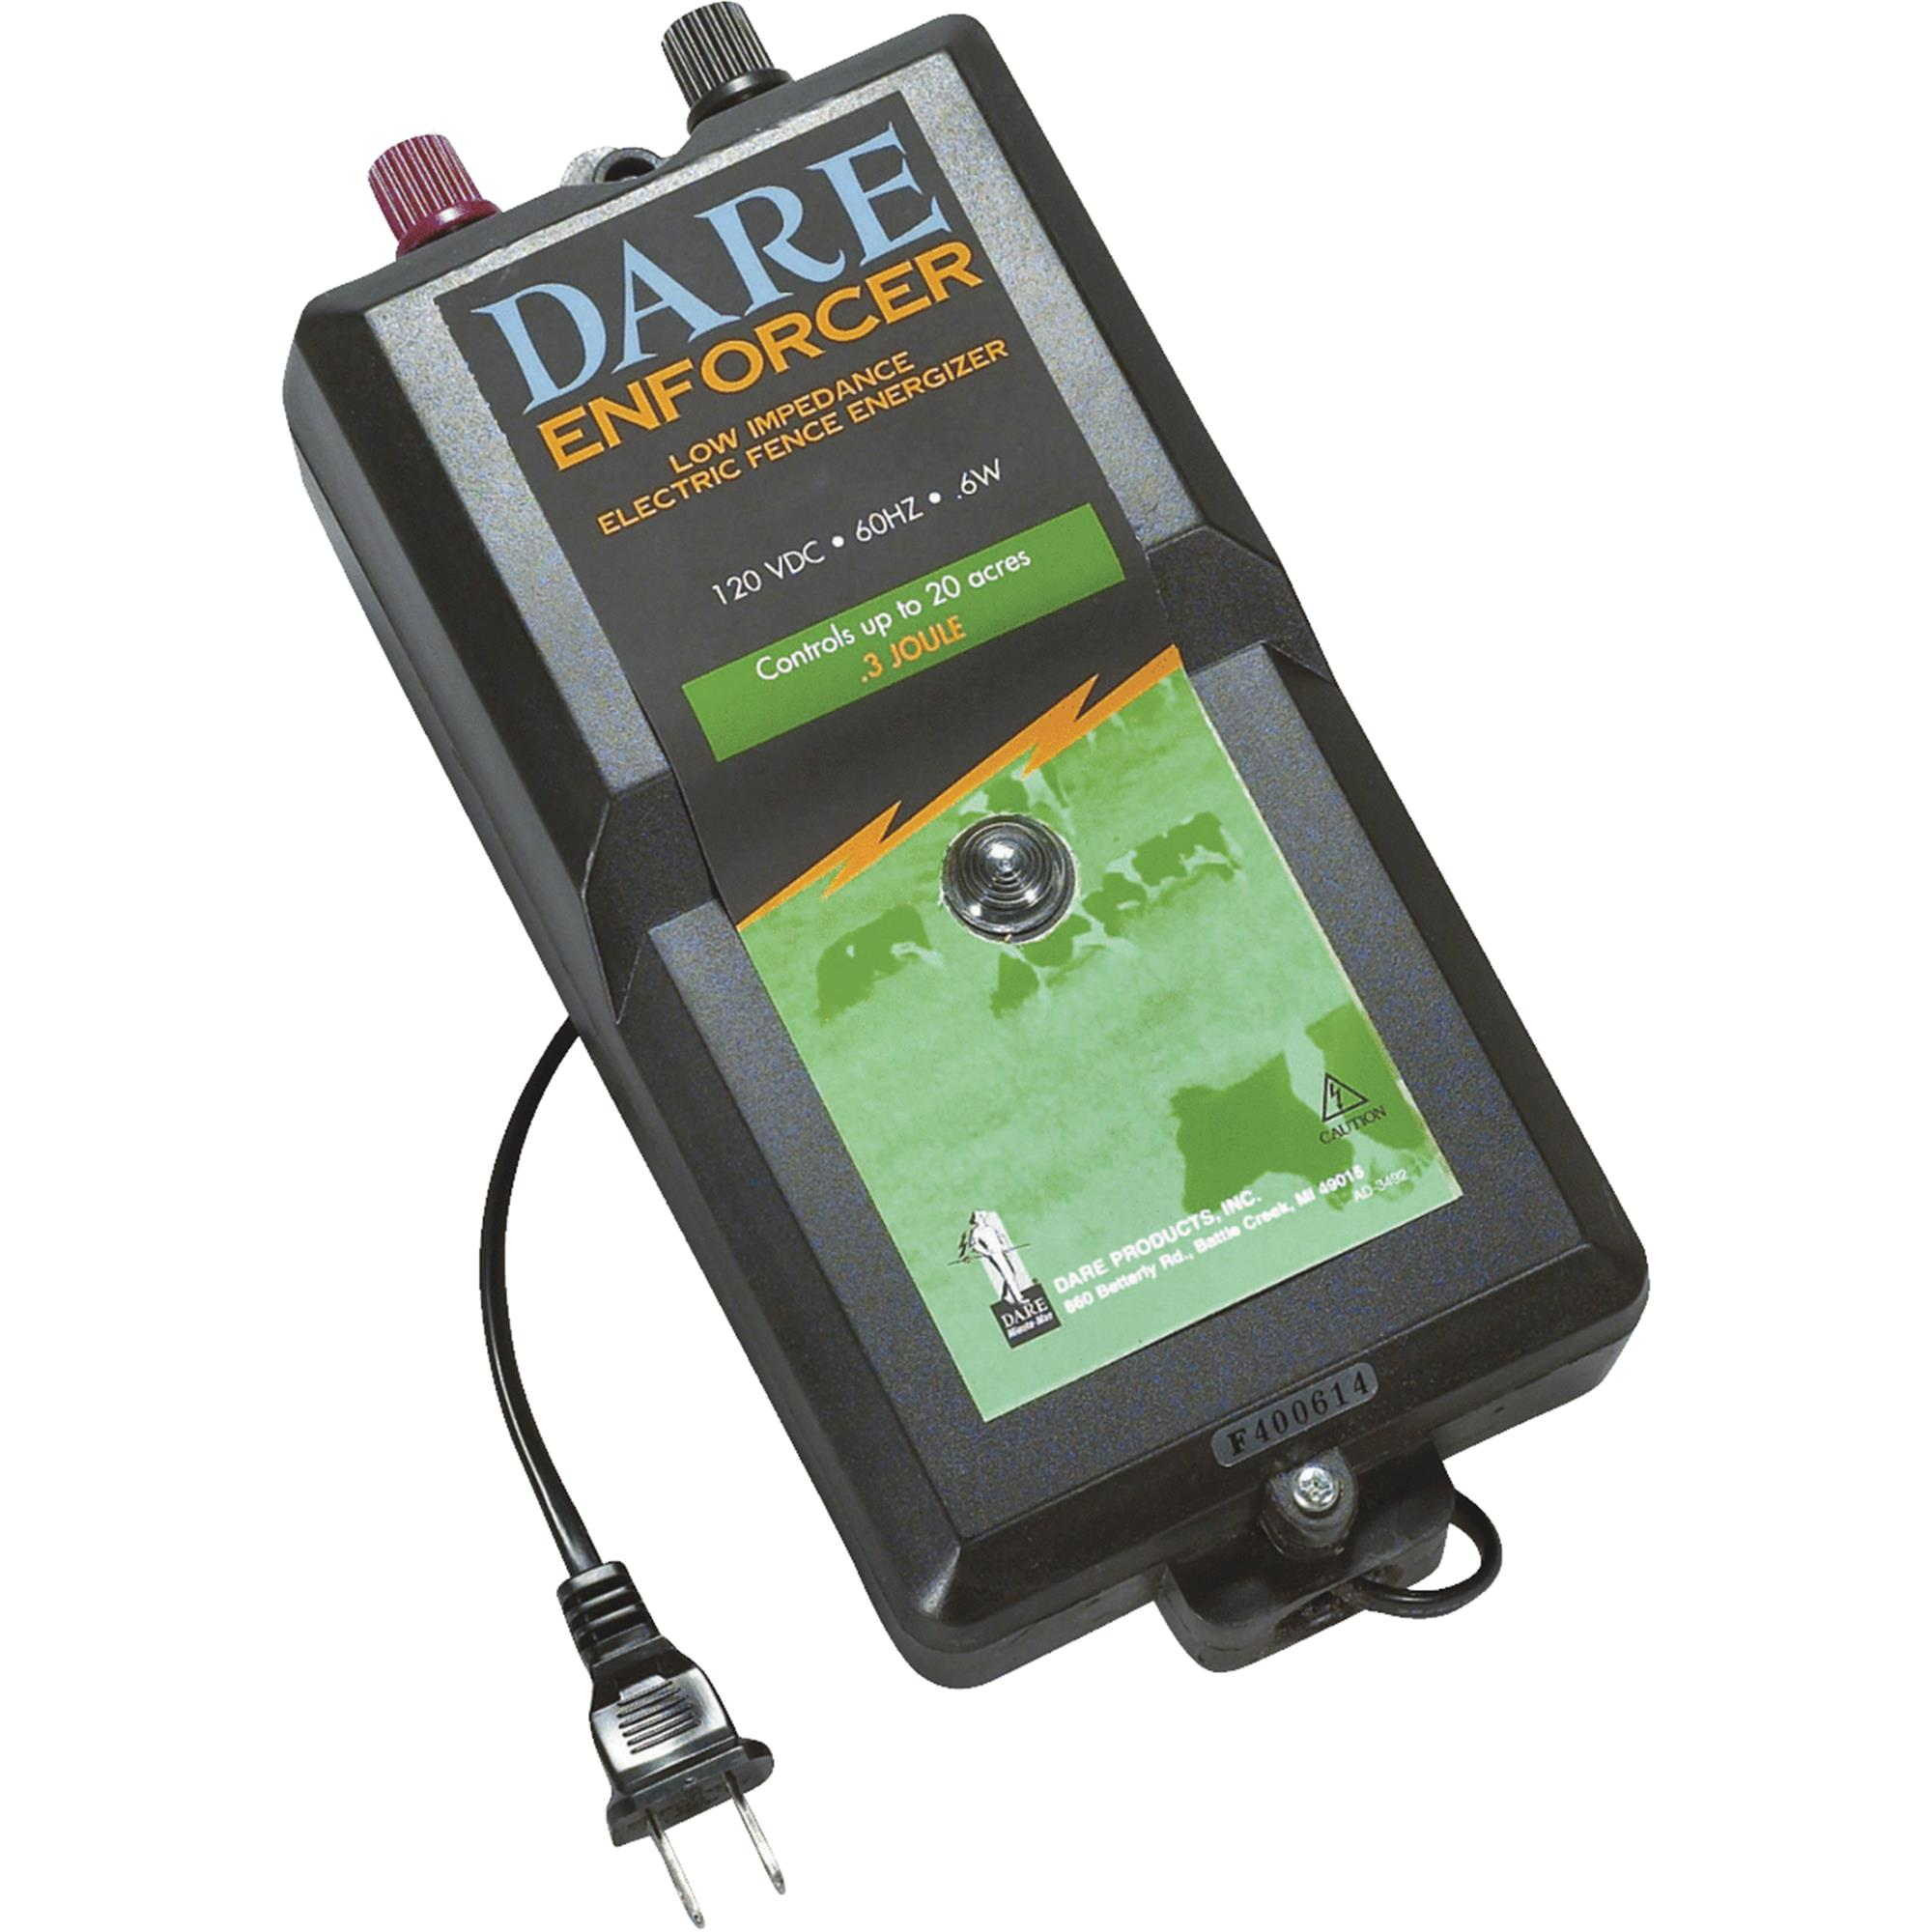 Electric Fence Charger Waterproof Box Wiring Diagram And Ebooks Energizer Dare Enforcer Gallagher